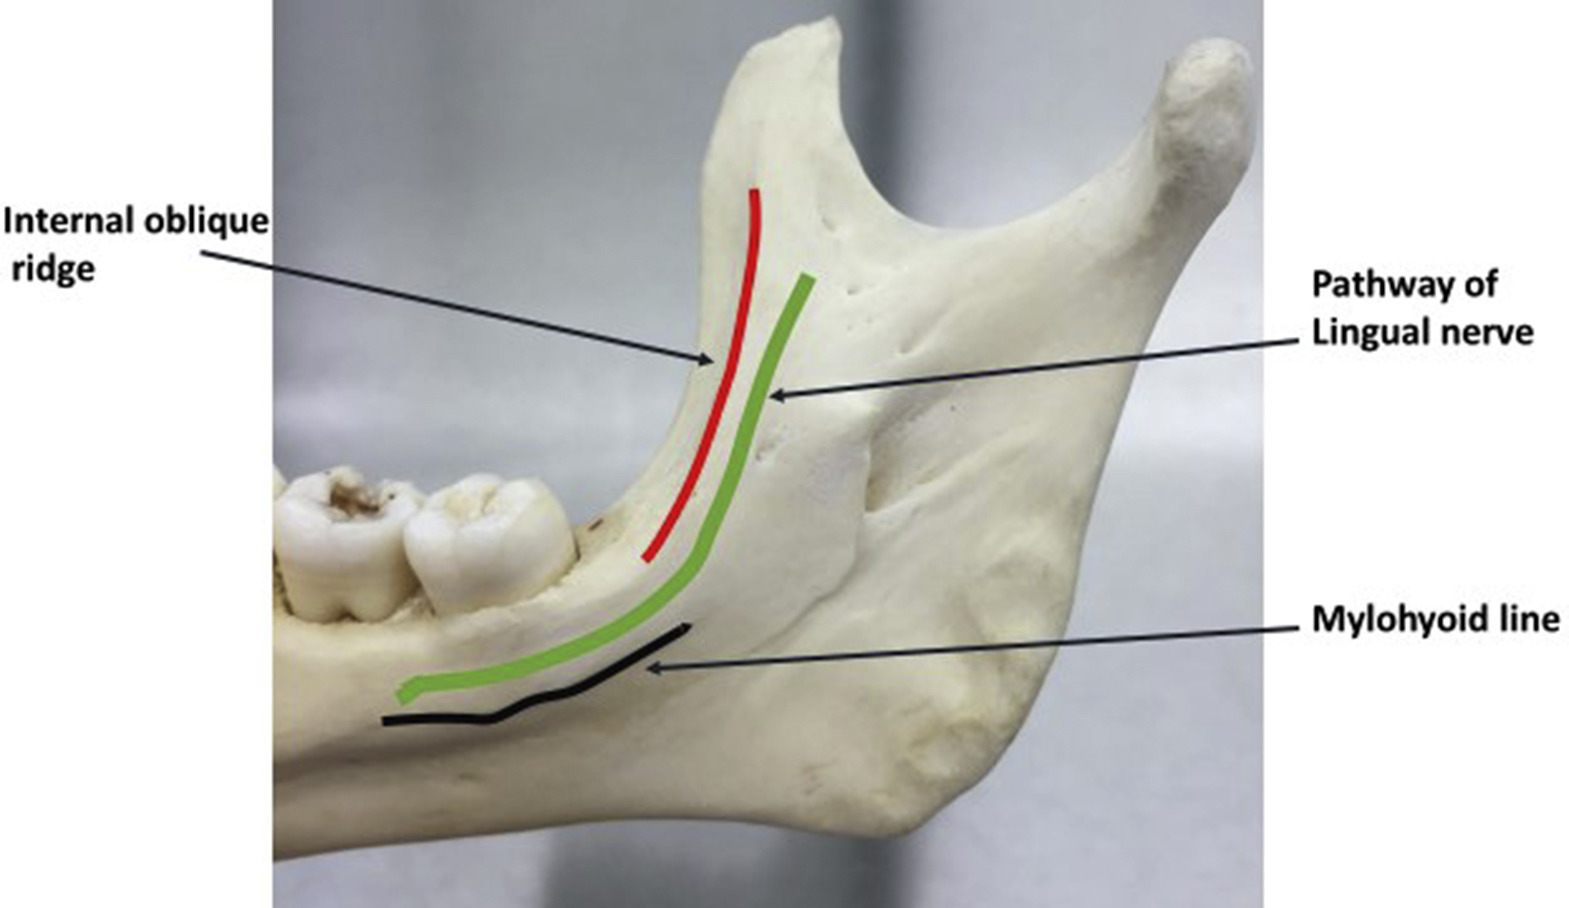 Lingual nerve measurements in cadaveric dissections ...